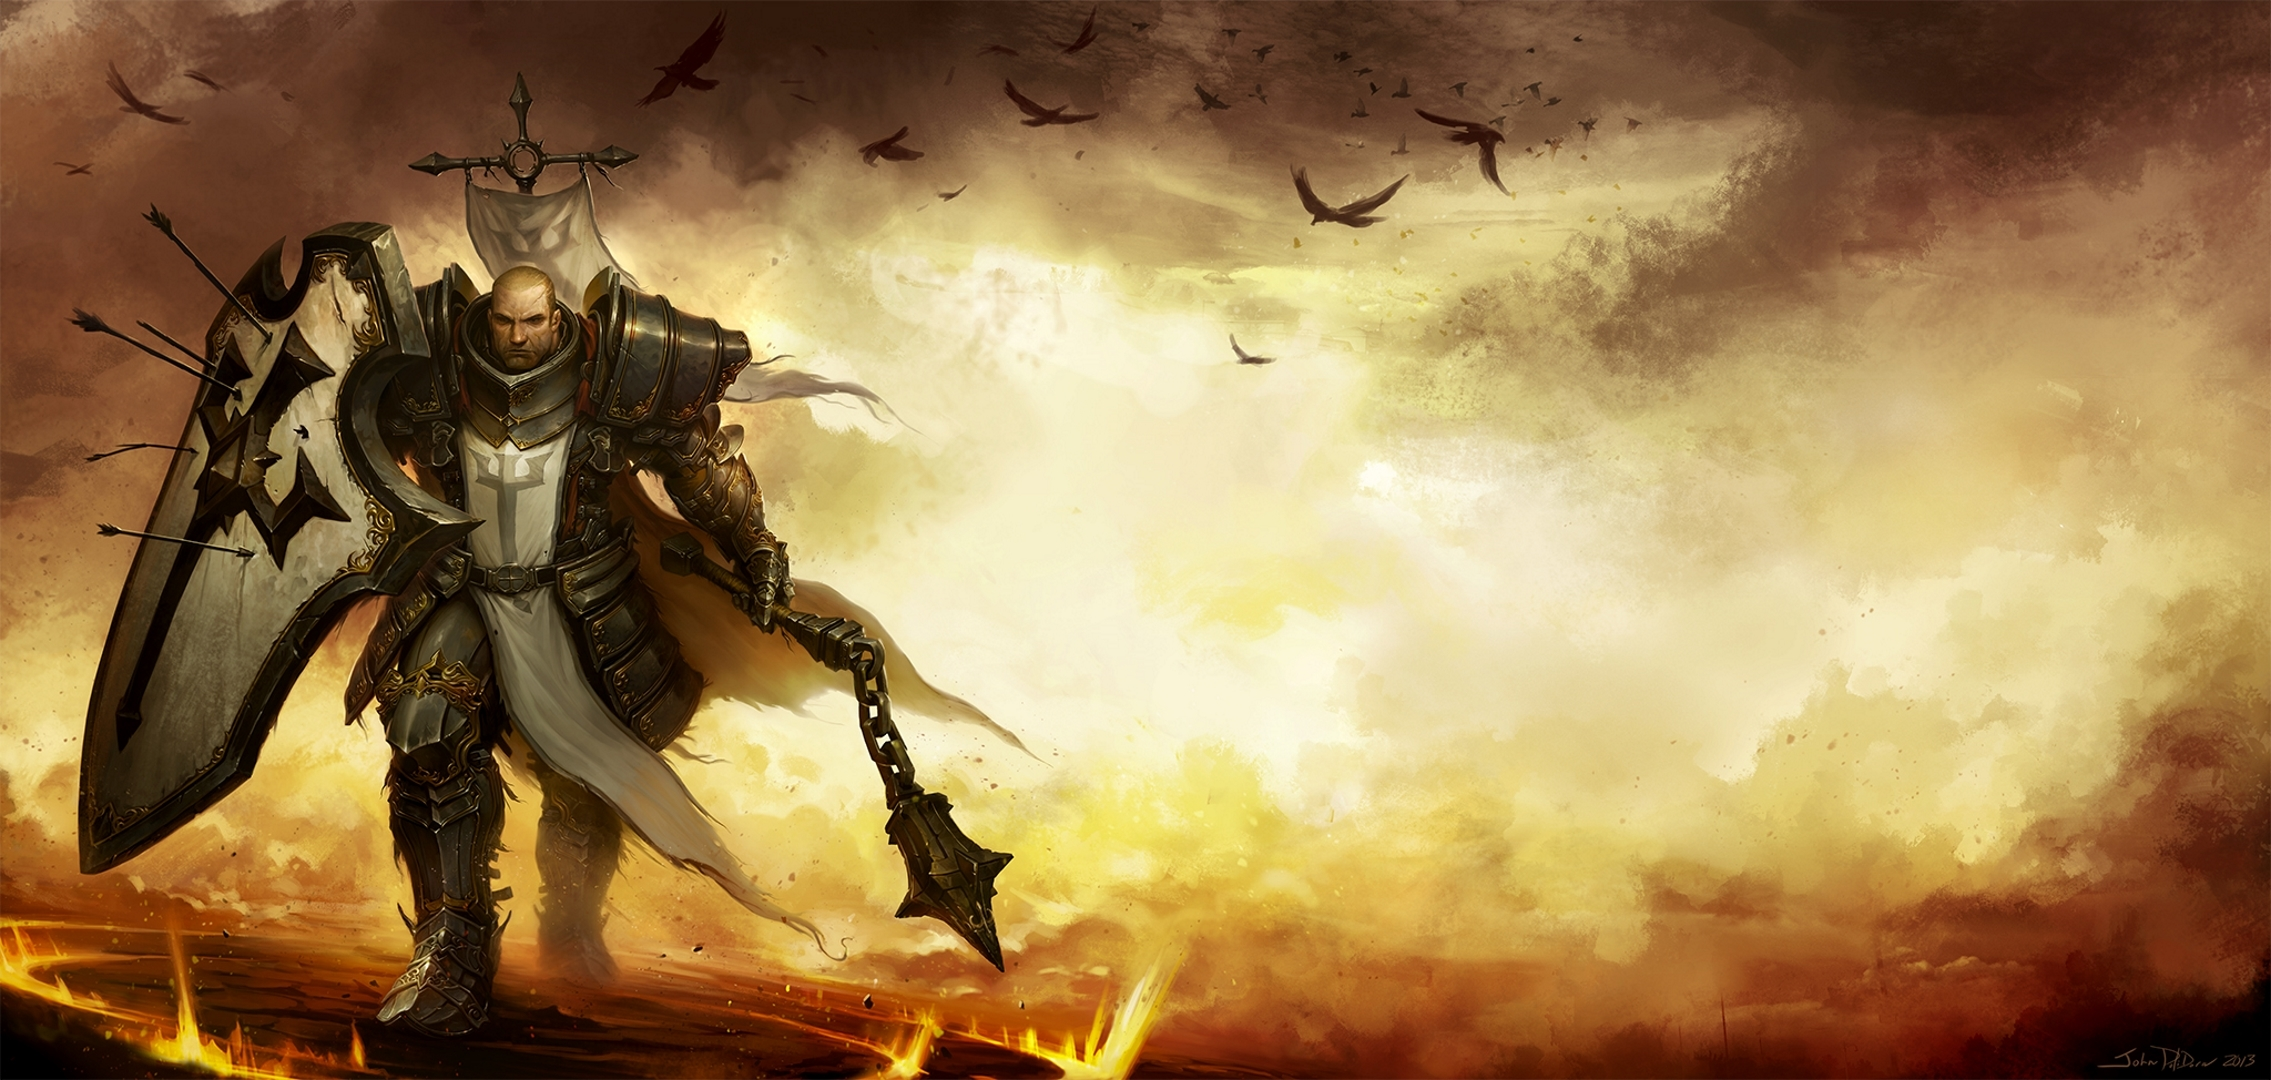 Diablo 3 Crusader Wallpapers - WallpaperPulse